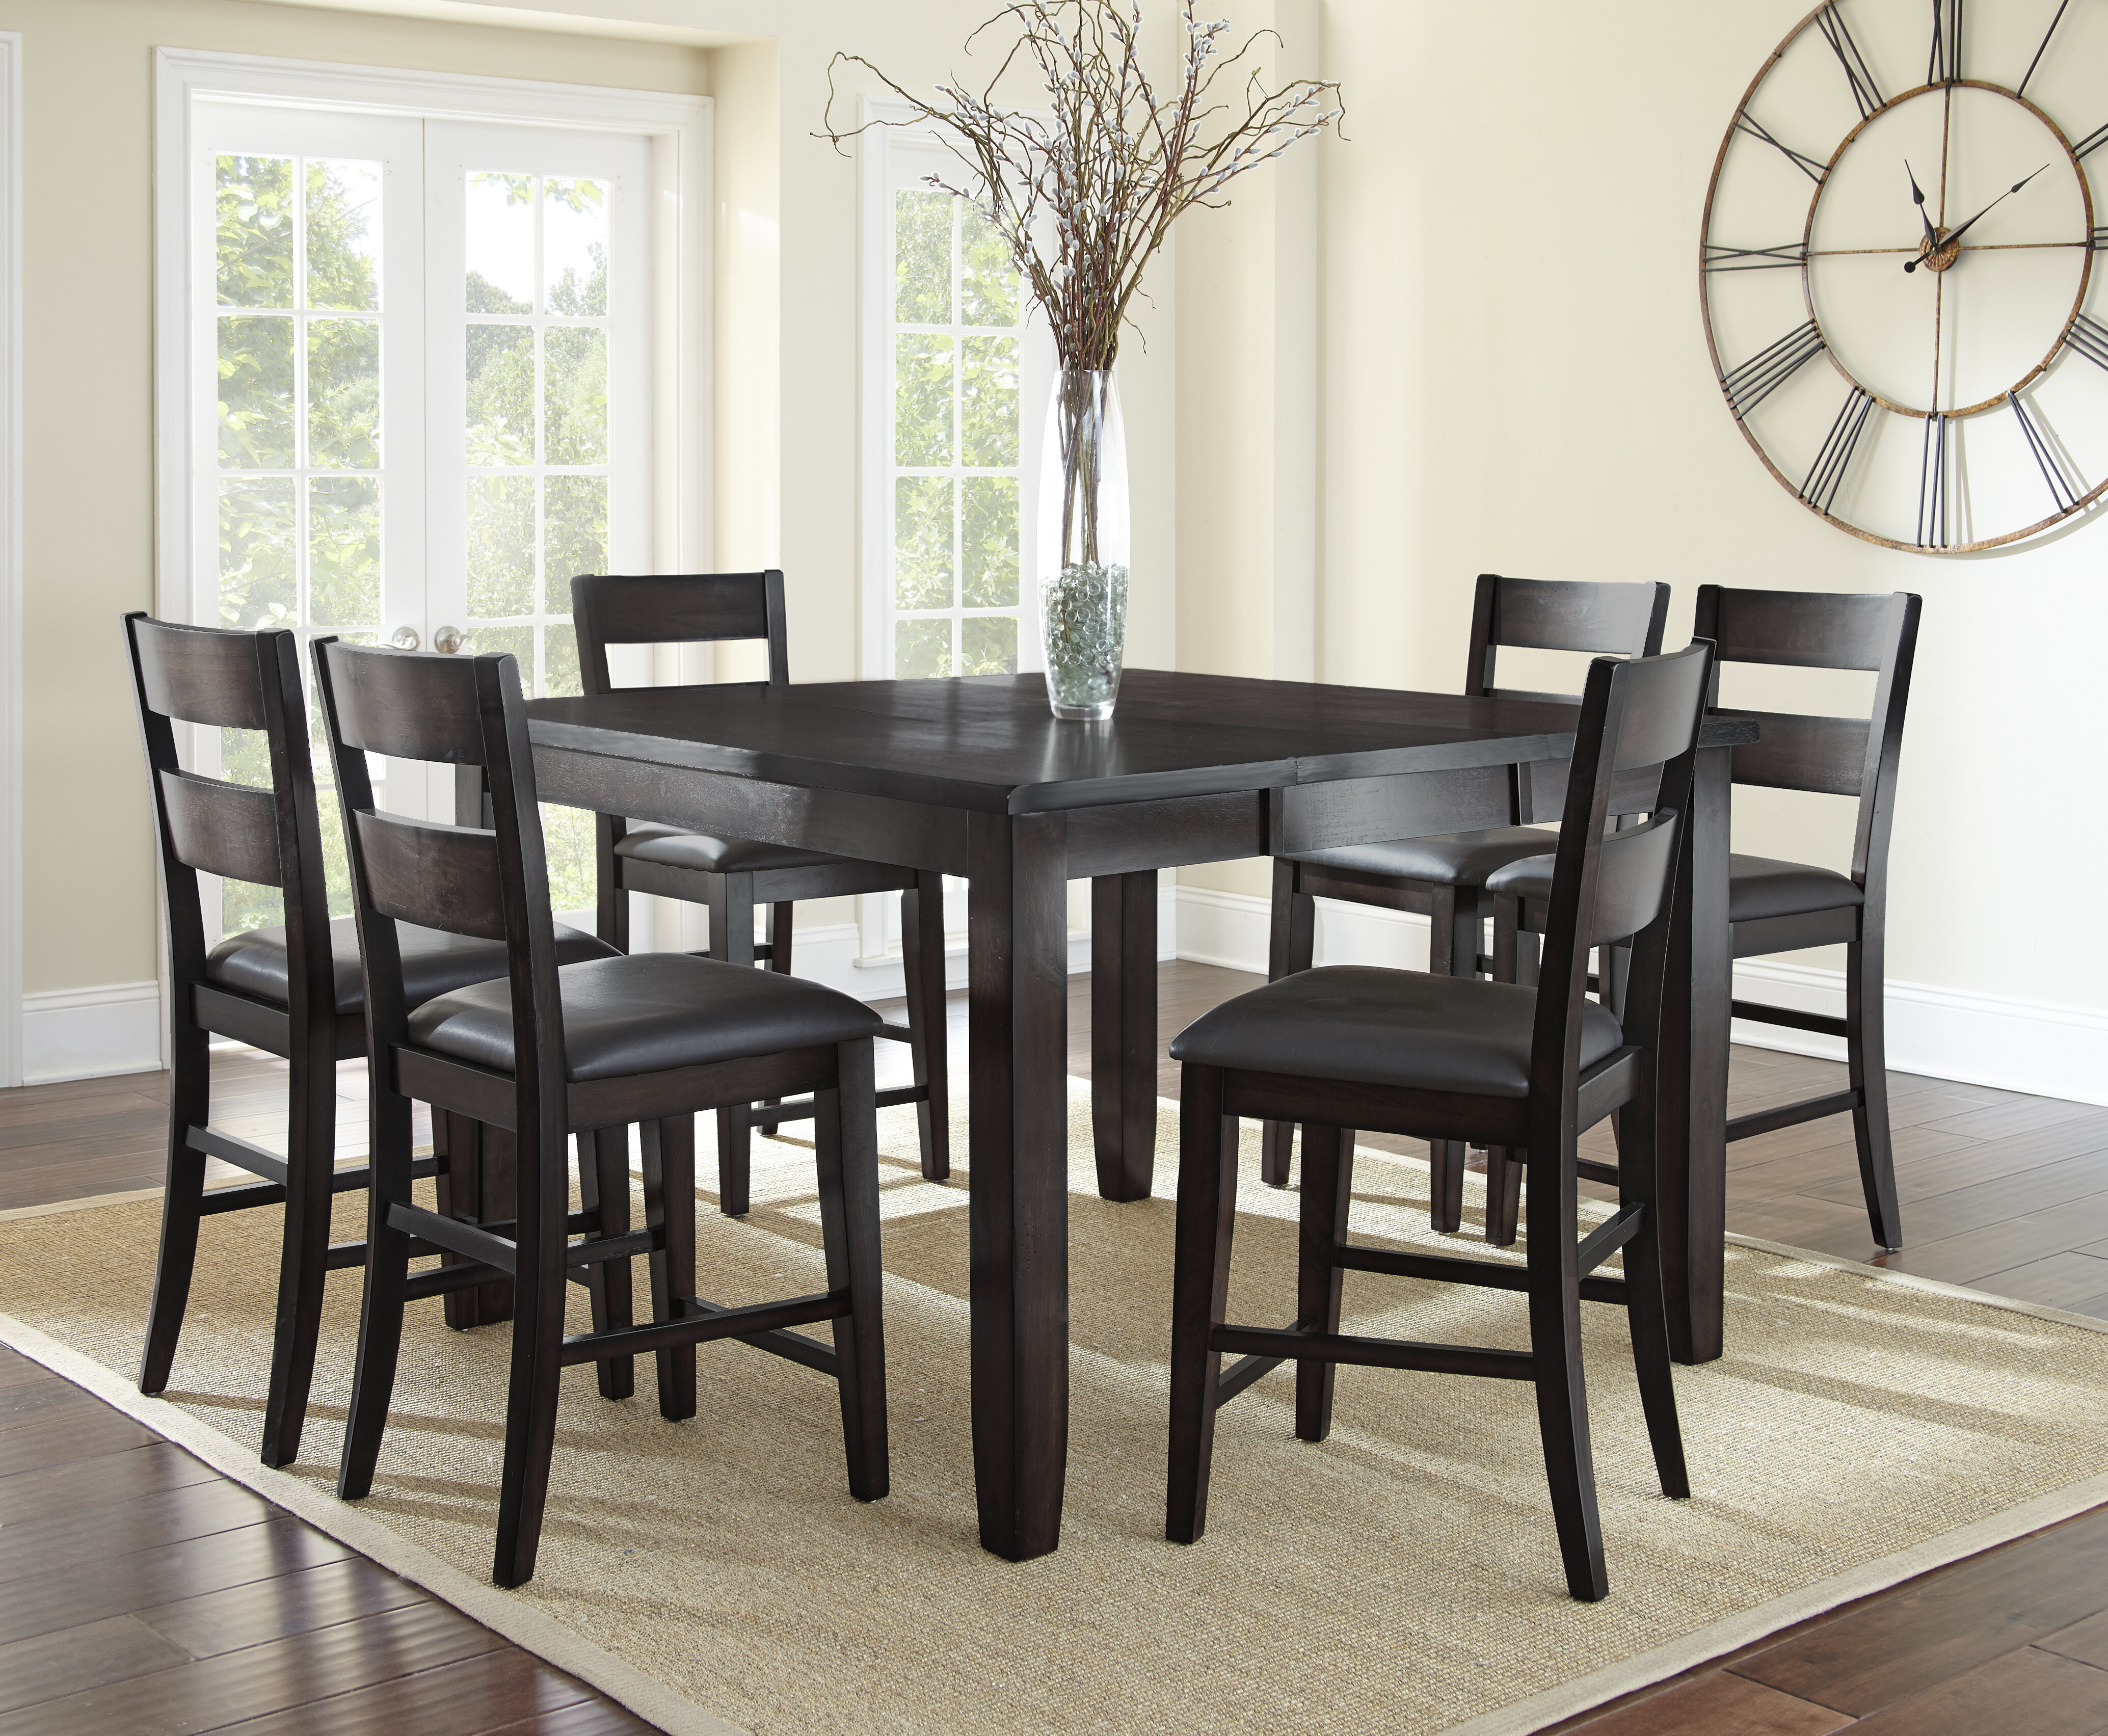 Wynwood 7 Piece Counter Height Solid Wood Dining Table Set